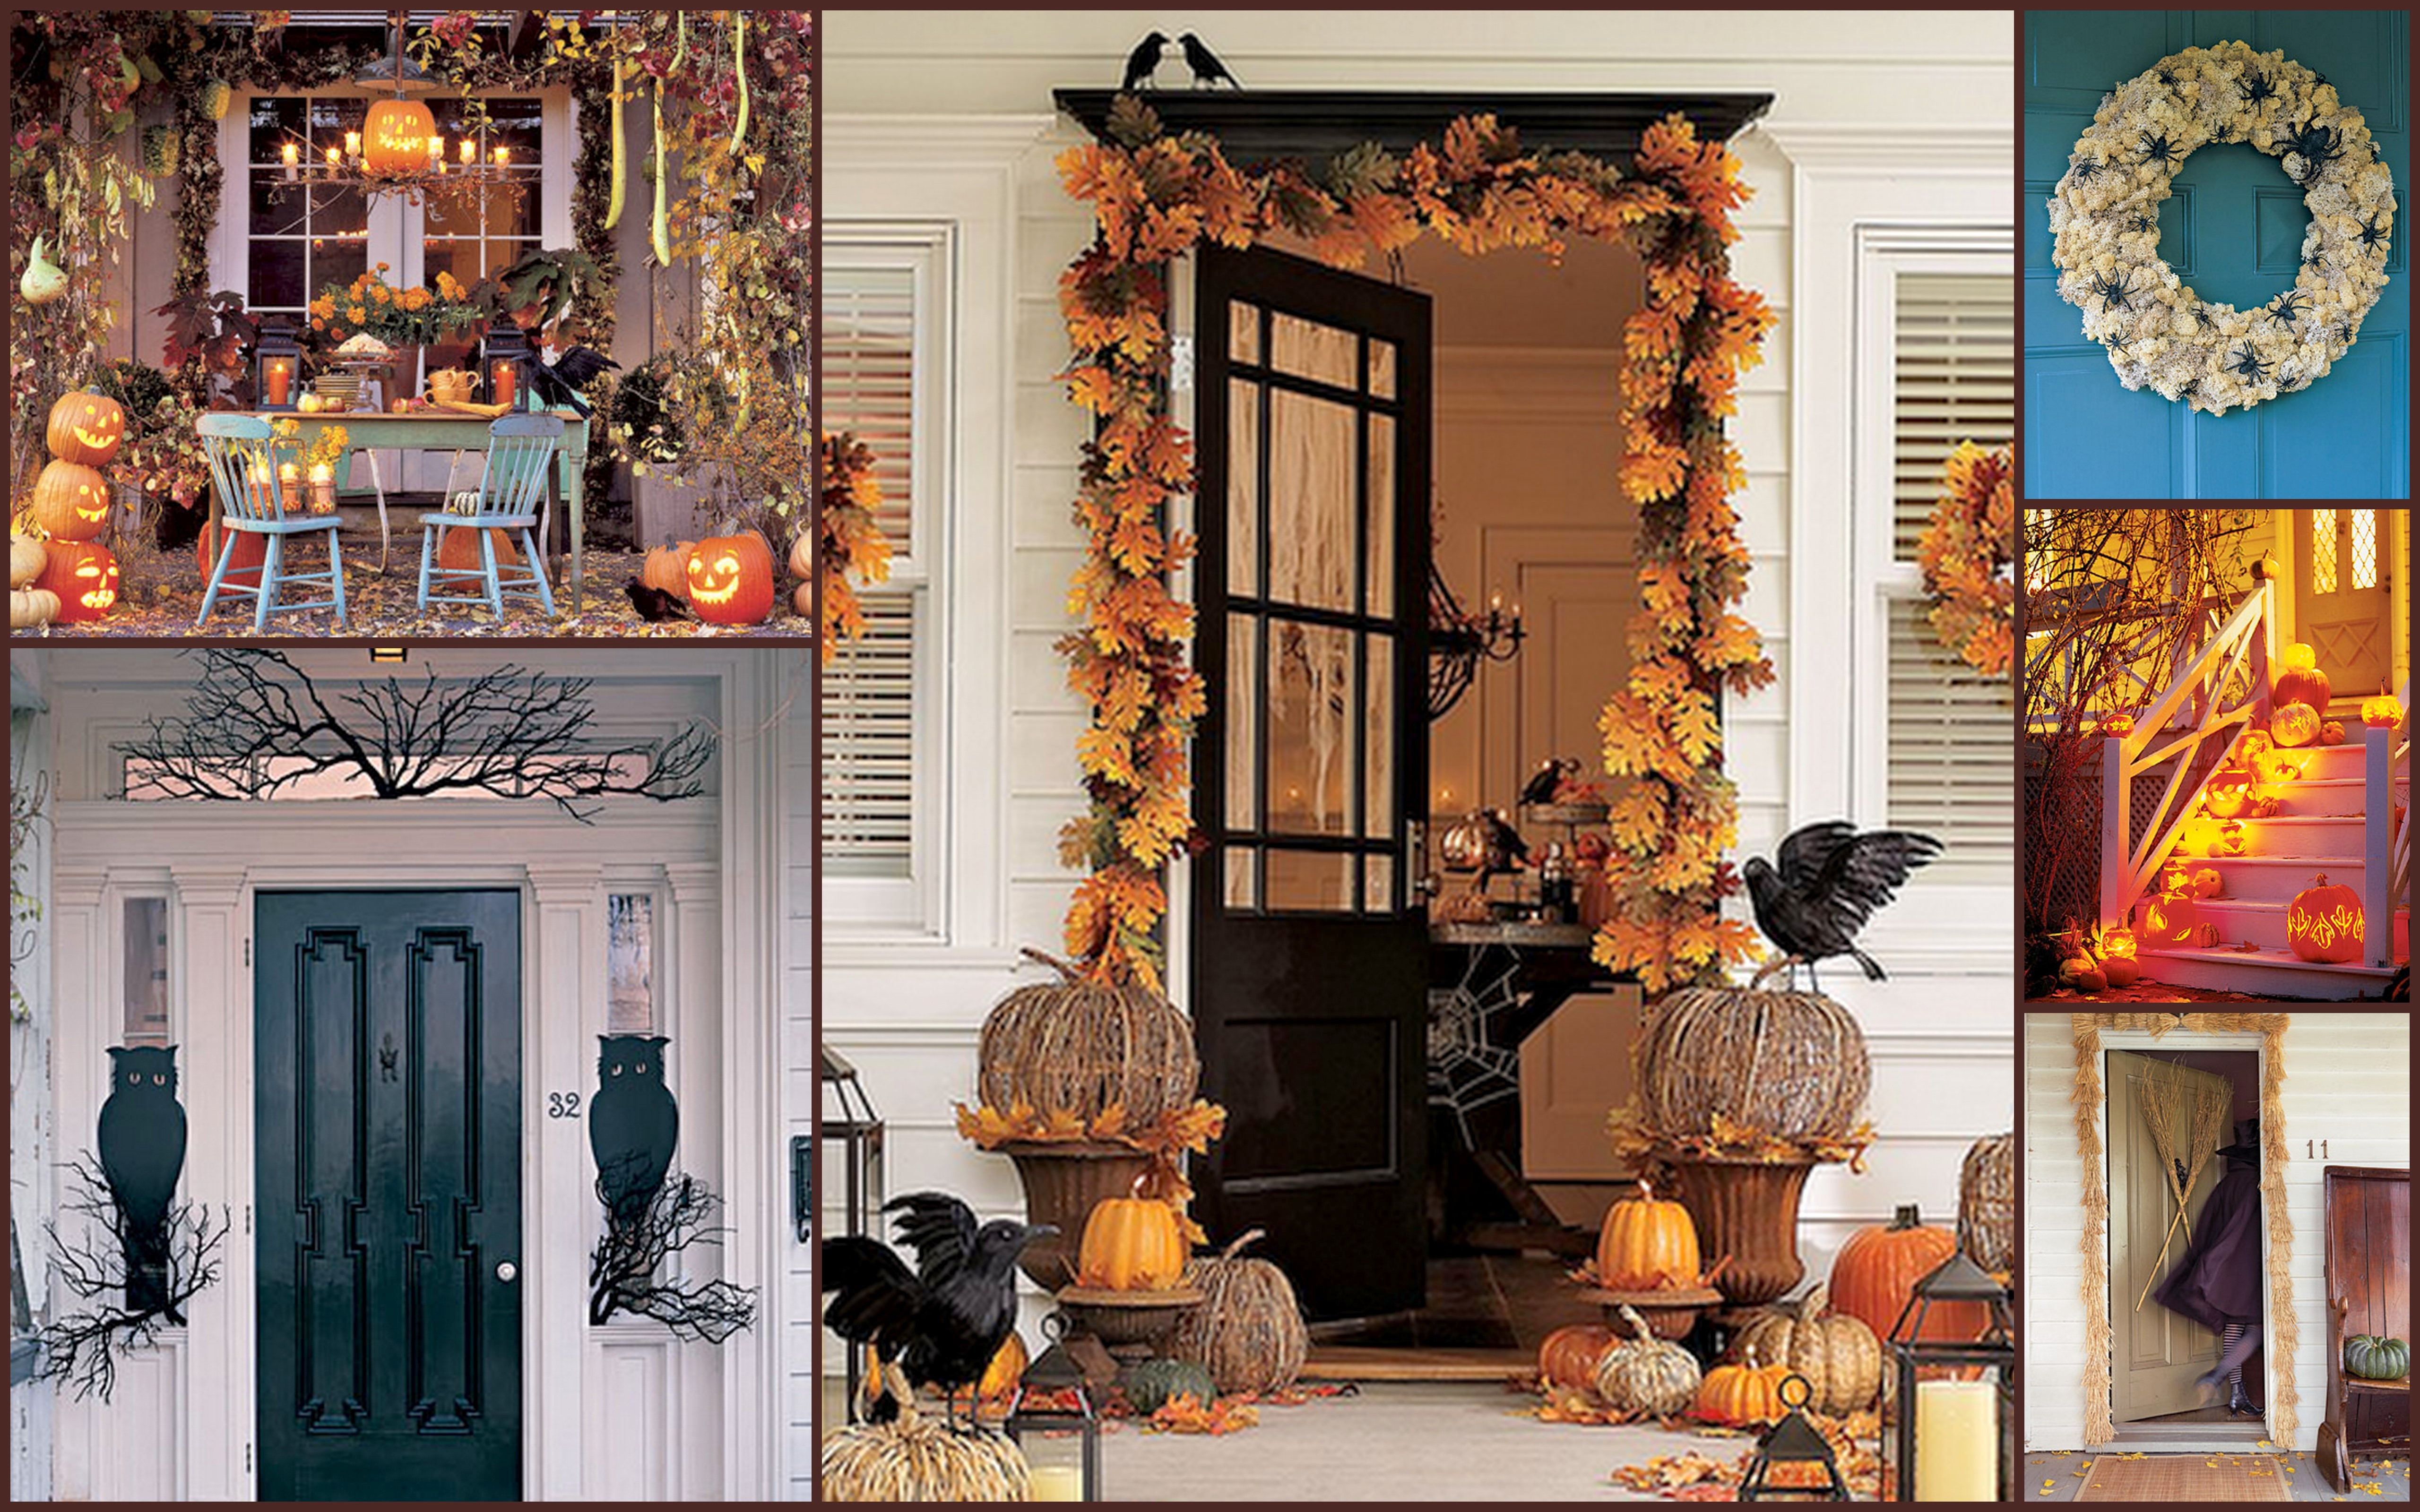 Outdoor Halloween Decorations Ideas  October 2011 – lily and co